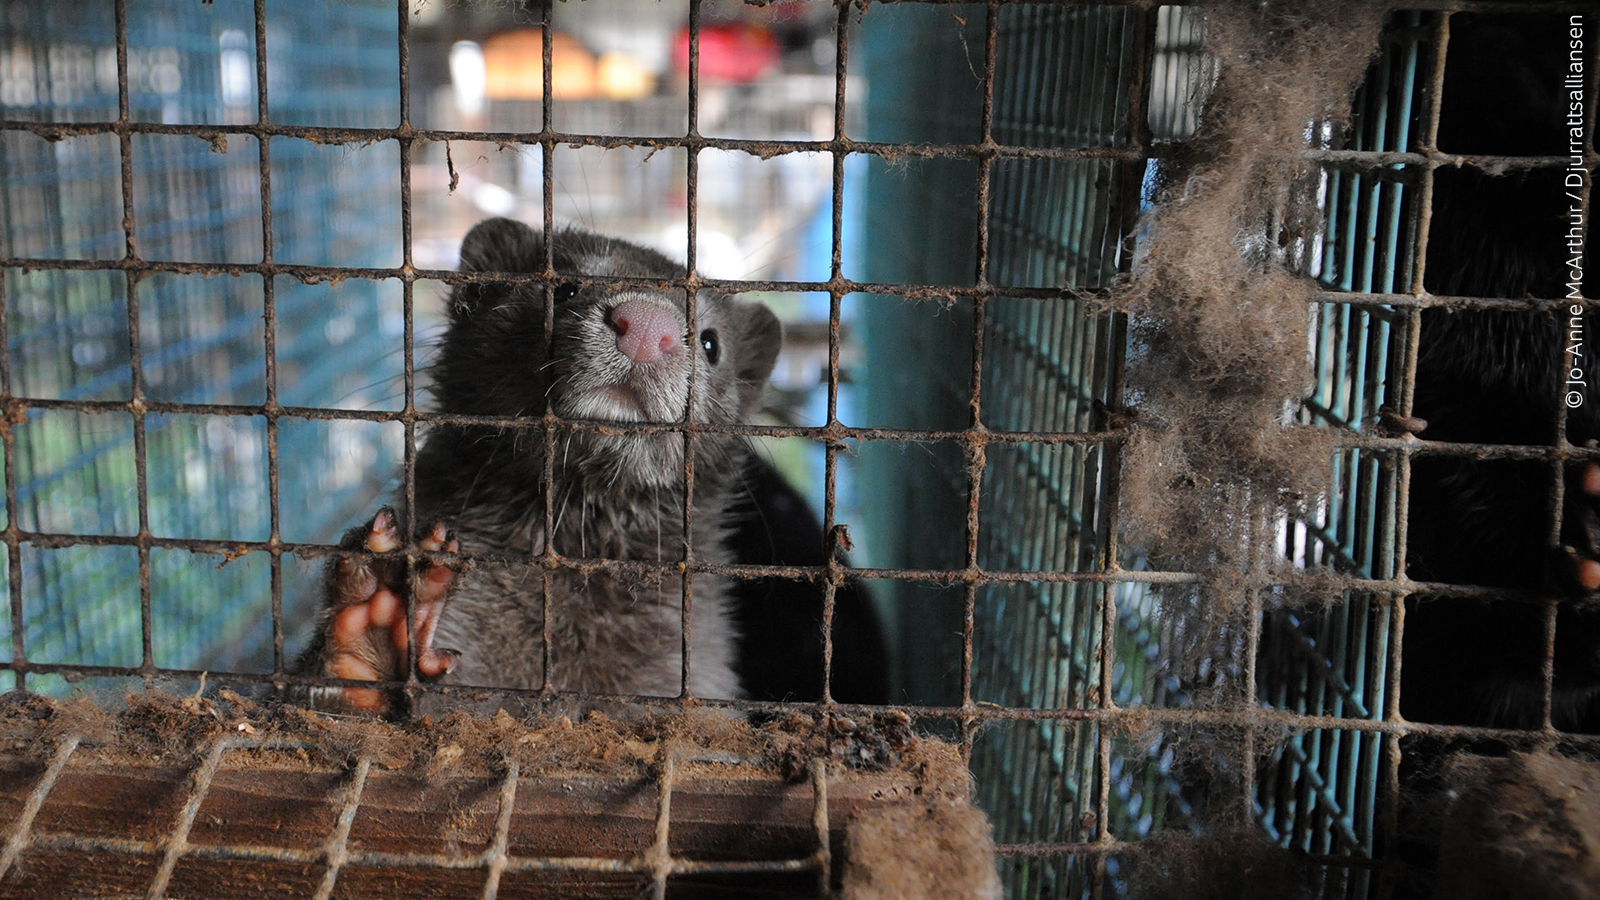 Fur is cruelty: EU keep out!